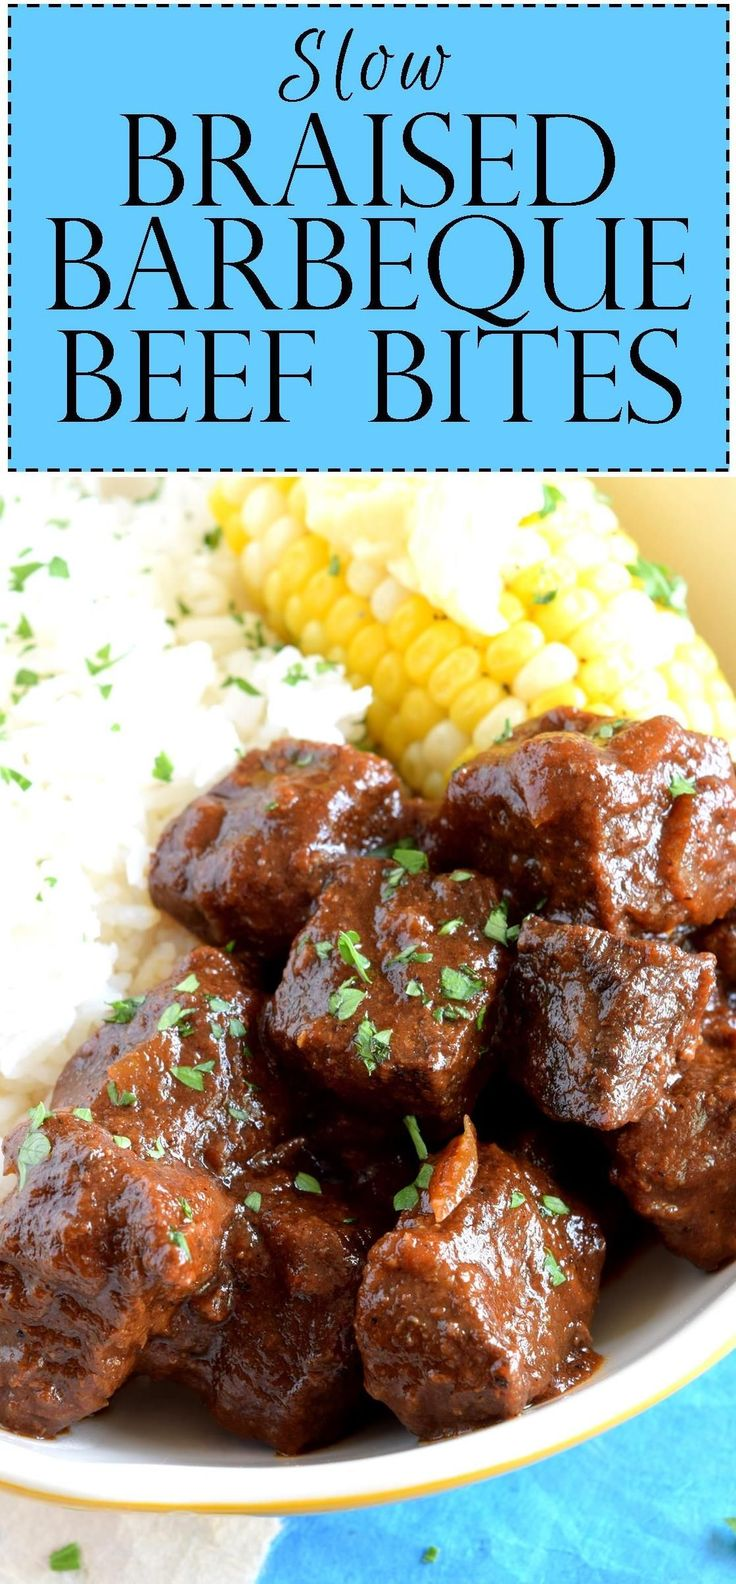 Slow Braised Barbequed Beef Bites are tender and moist with just the right amount of heat and sweet. This recipe is the perfect way to enjoy deep barbeque flavours without grilling. What seems like a million years ago, I was… #Grillingrecipes